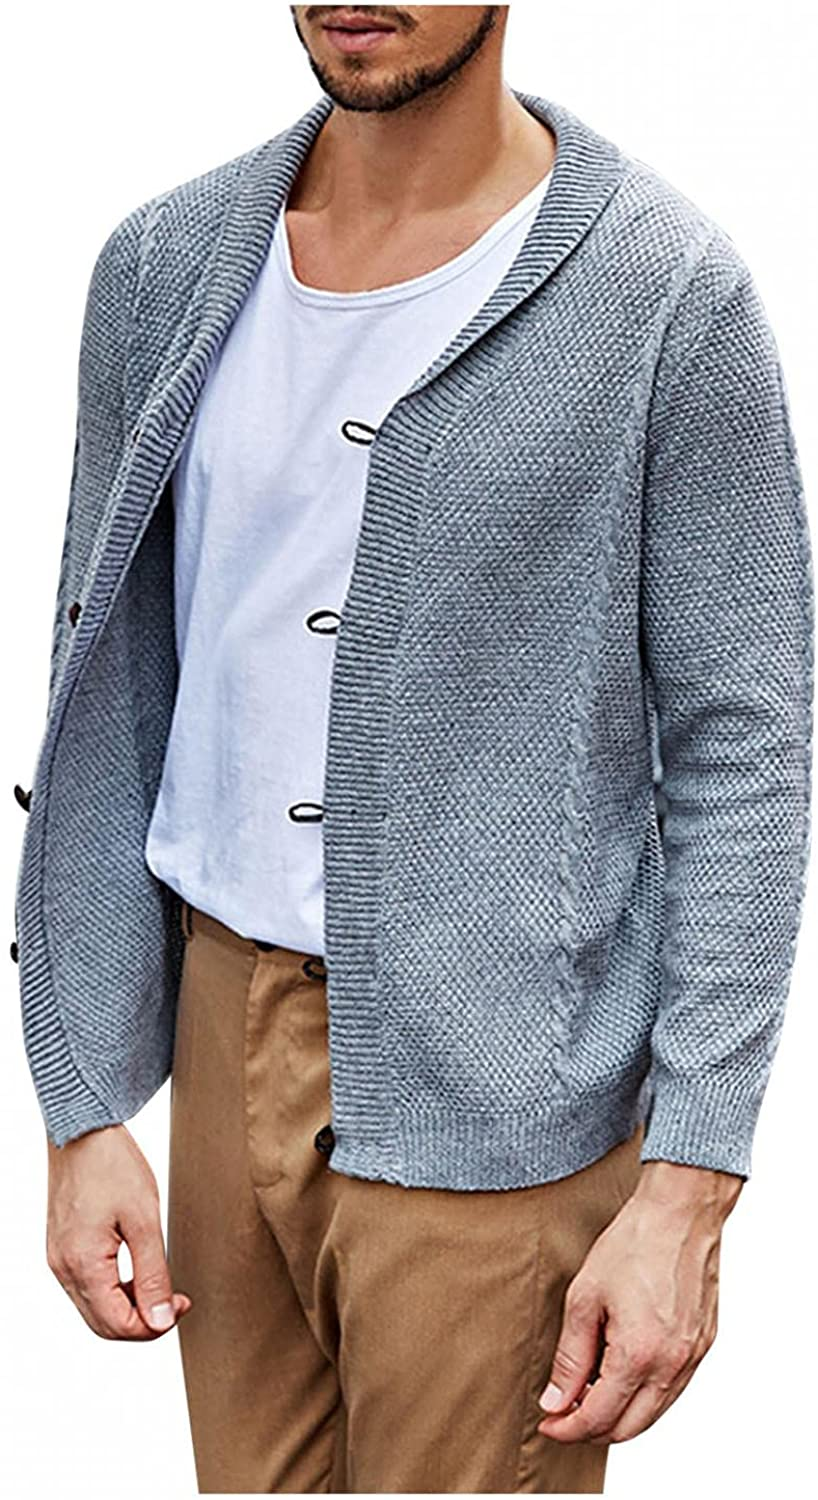 Mens Shawl Collar Cardigan Sweaters Button Down Knitted Sweatershirts Lightweight Cotton Long Sleeve Outwear Tops